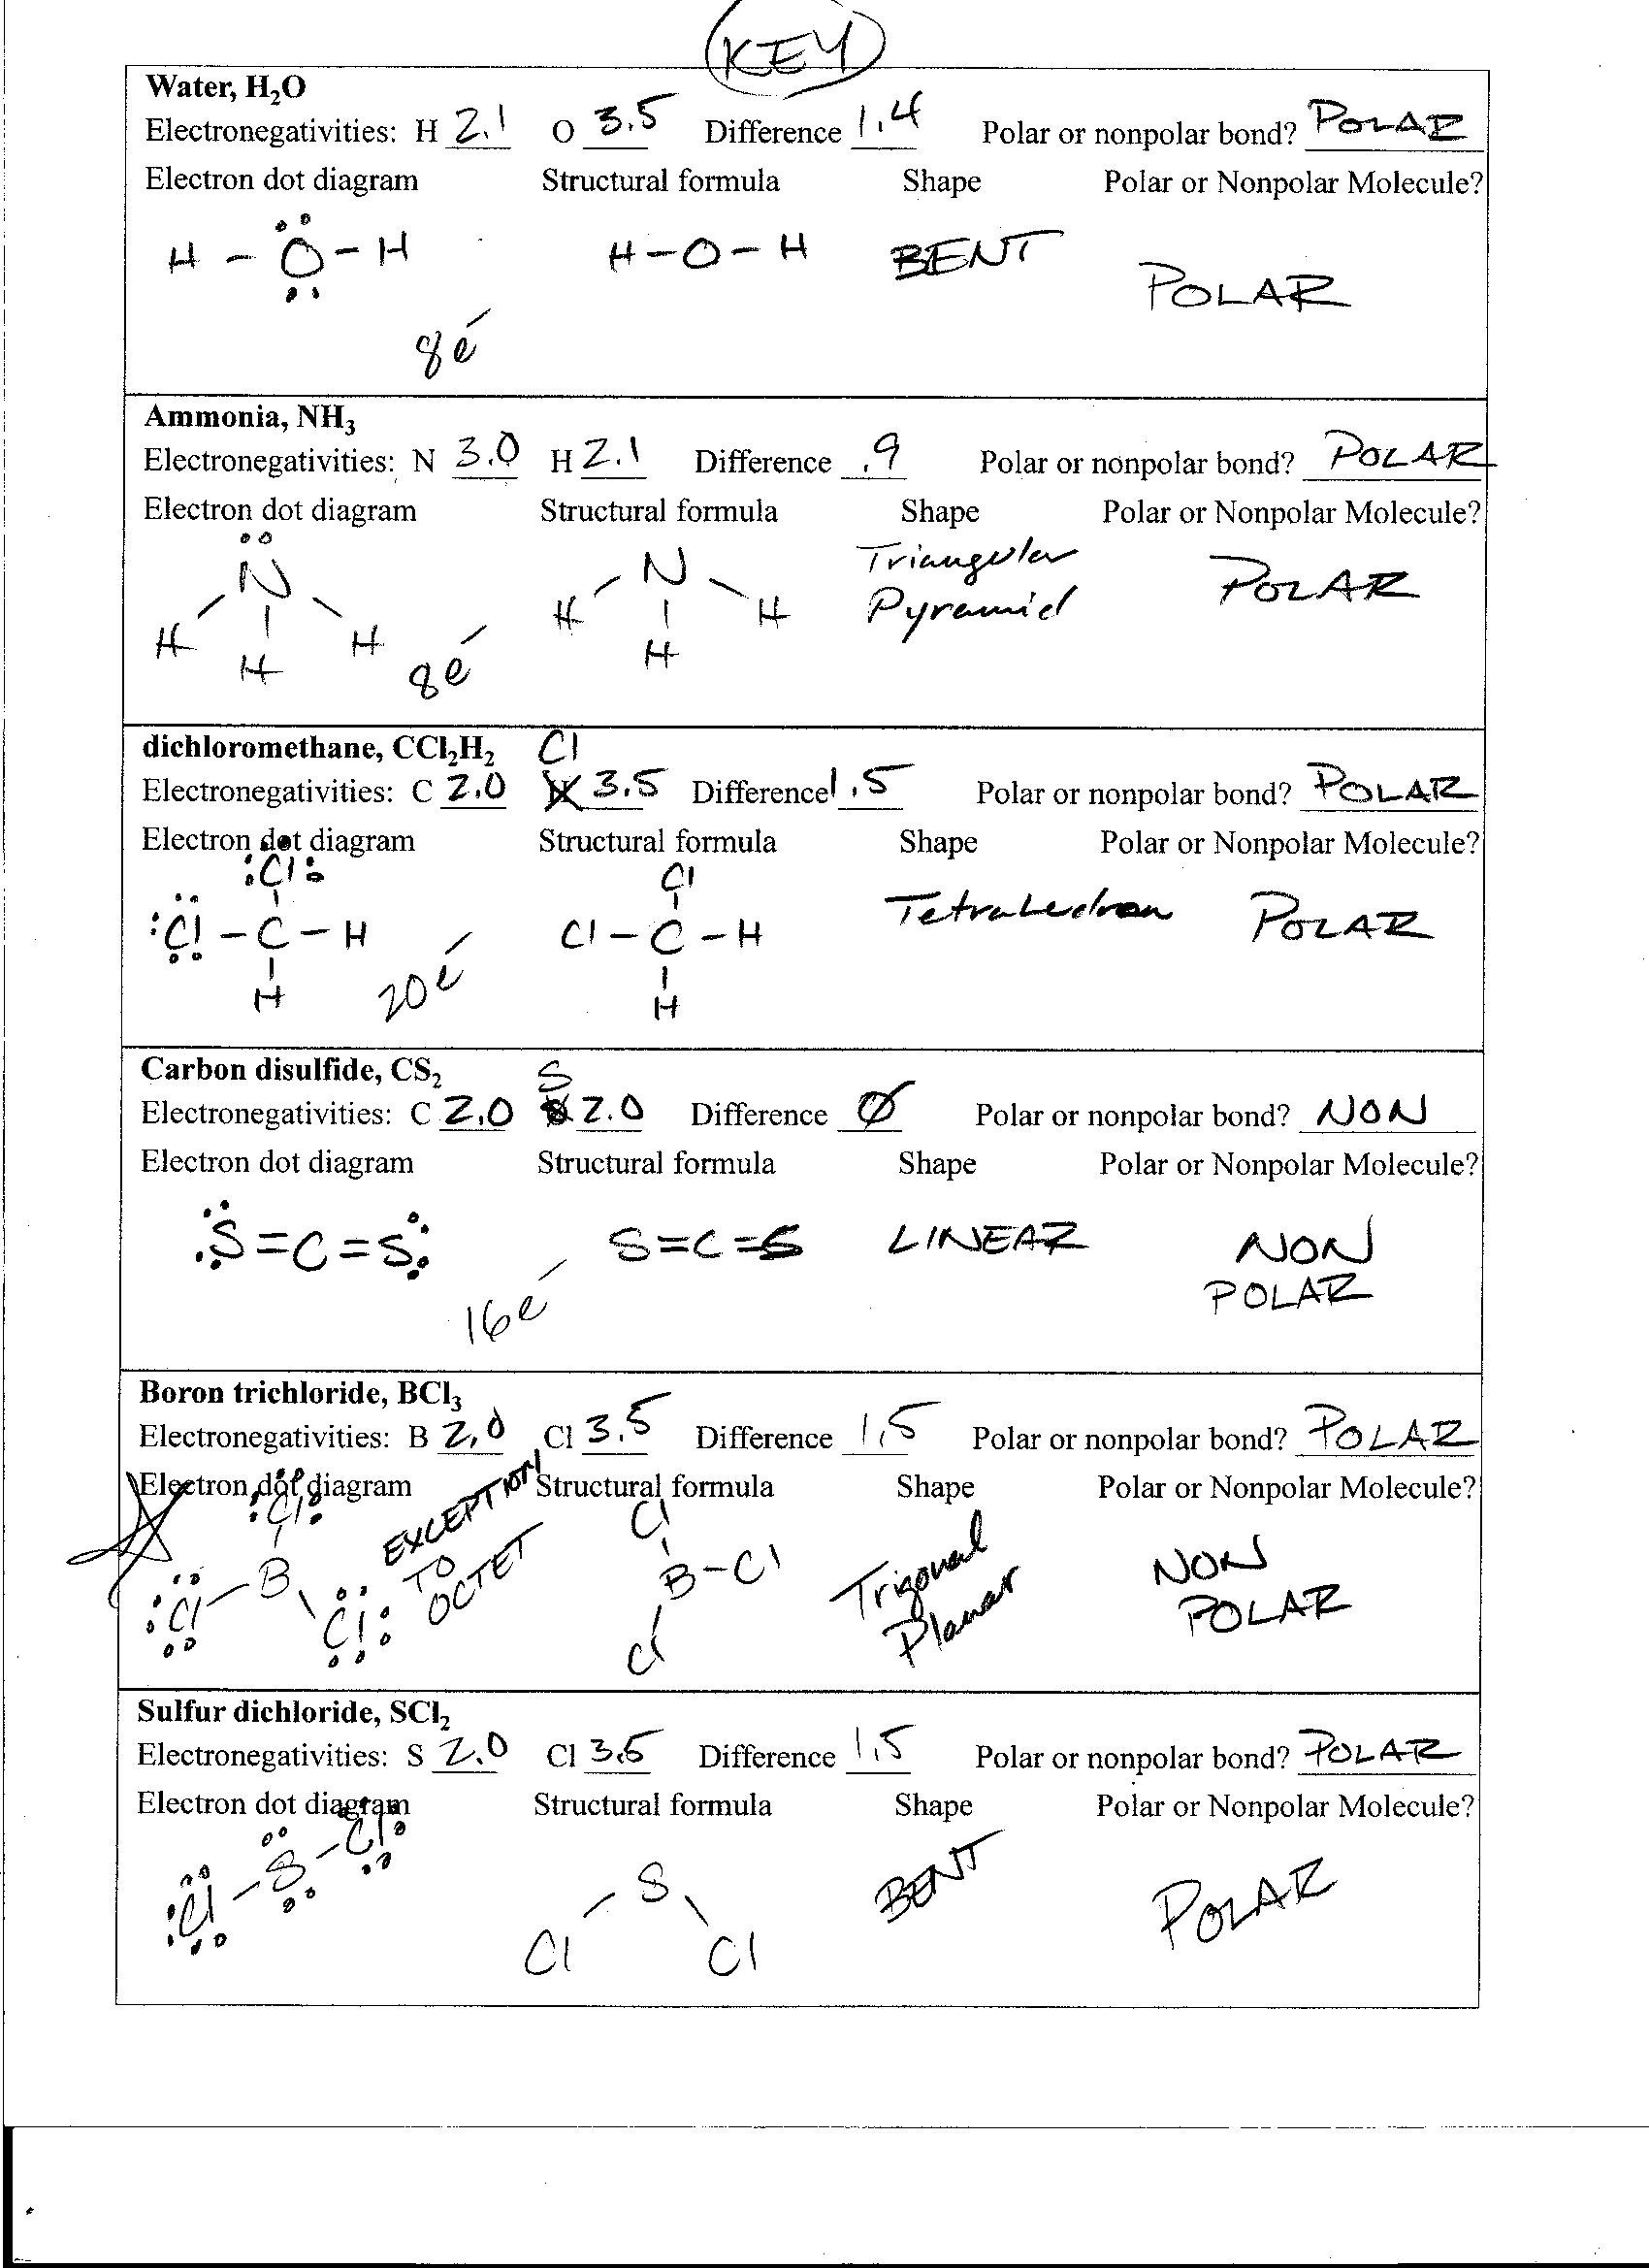 Foothill High School – Lewis Dot Diagram Worksheet with Answers